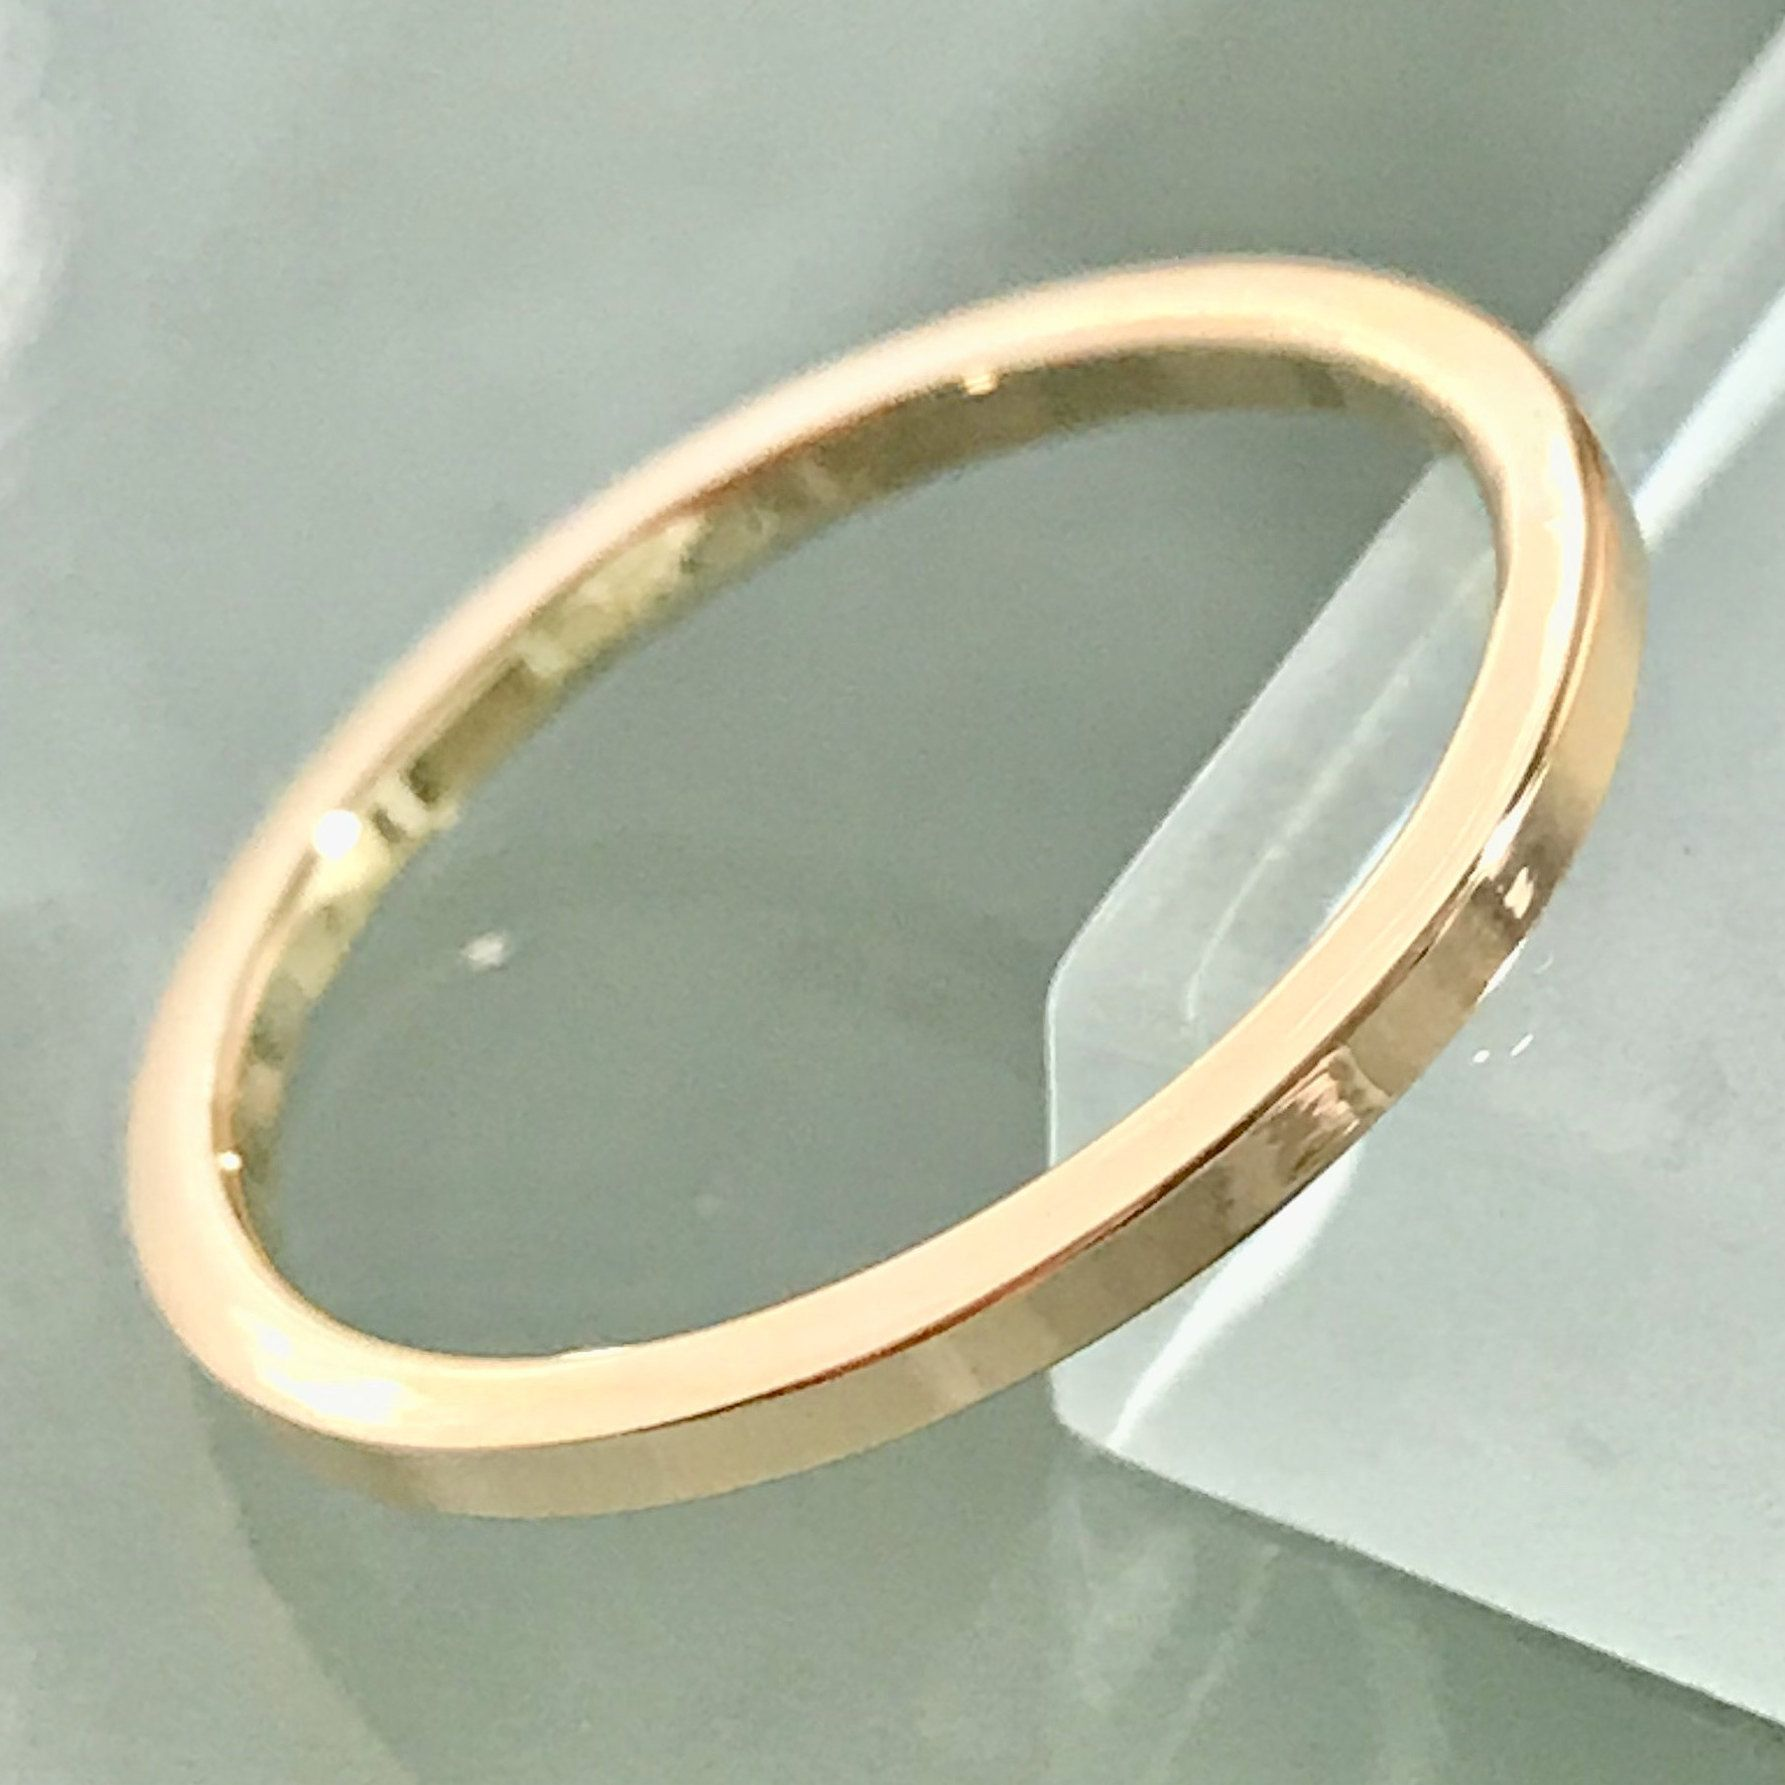 10k Gold Ring 10k Wedding Ring 10k Yellow Gold Square Ring 10k Square Ring 10k White Gold Square Ring 10k Band Ring 10k Gold Band Square Rings 10k Gold Ring Gold